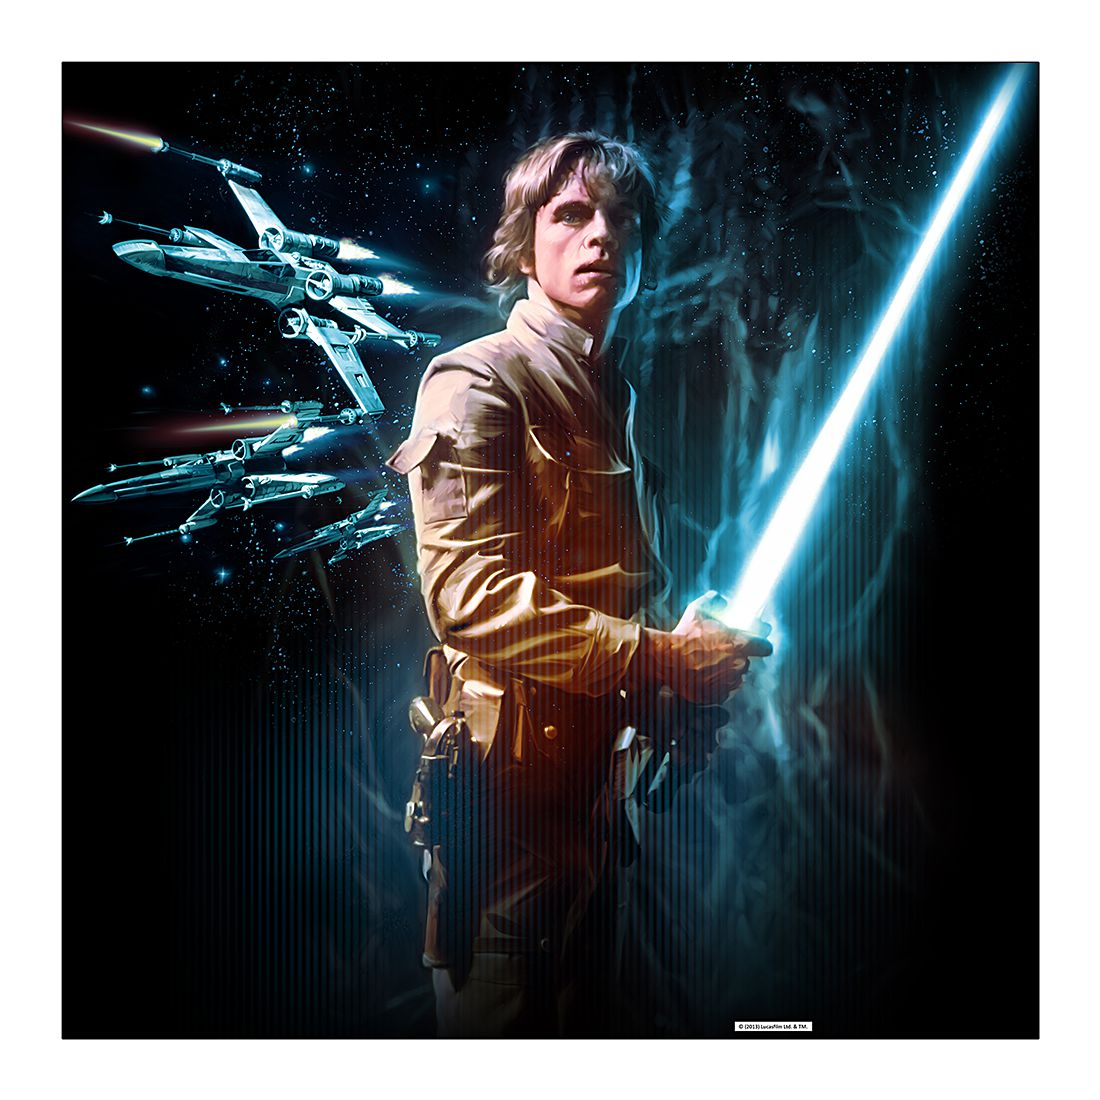 Acrylglasbild Luke Skywalker – 80 x 80 cm, Gallery of Innovative Art kaufen